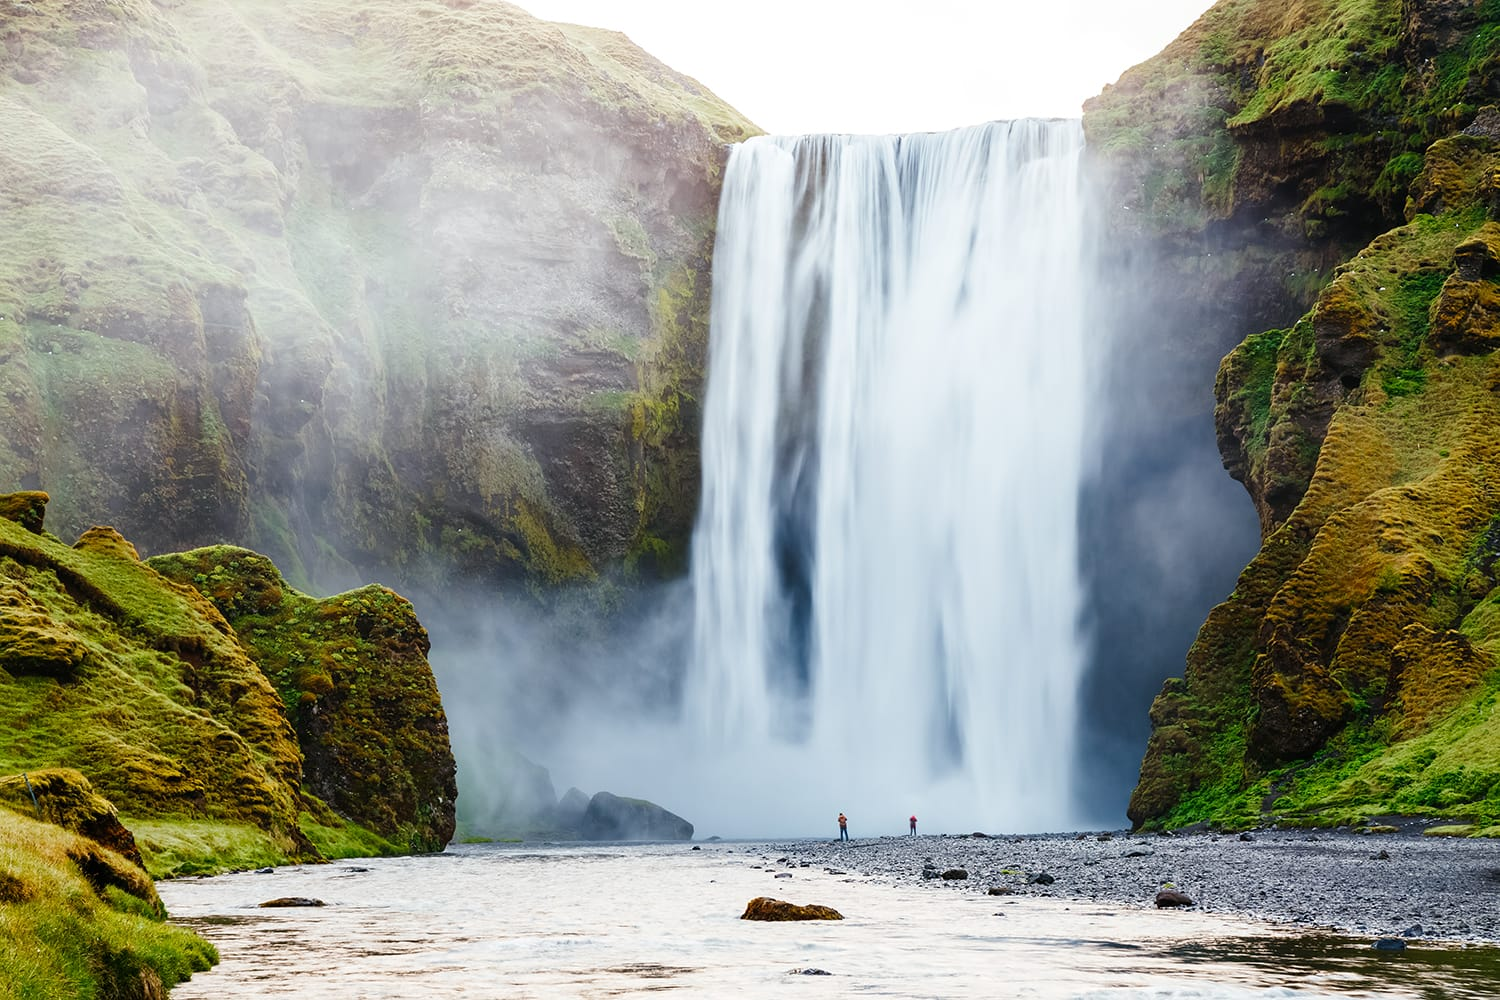 amous Skogafoss waterfall in Iceland